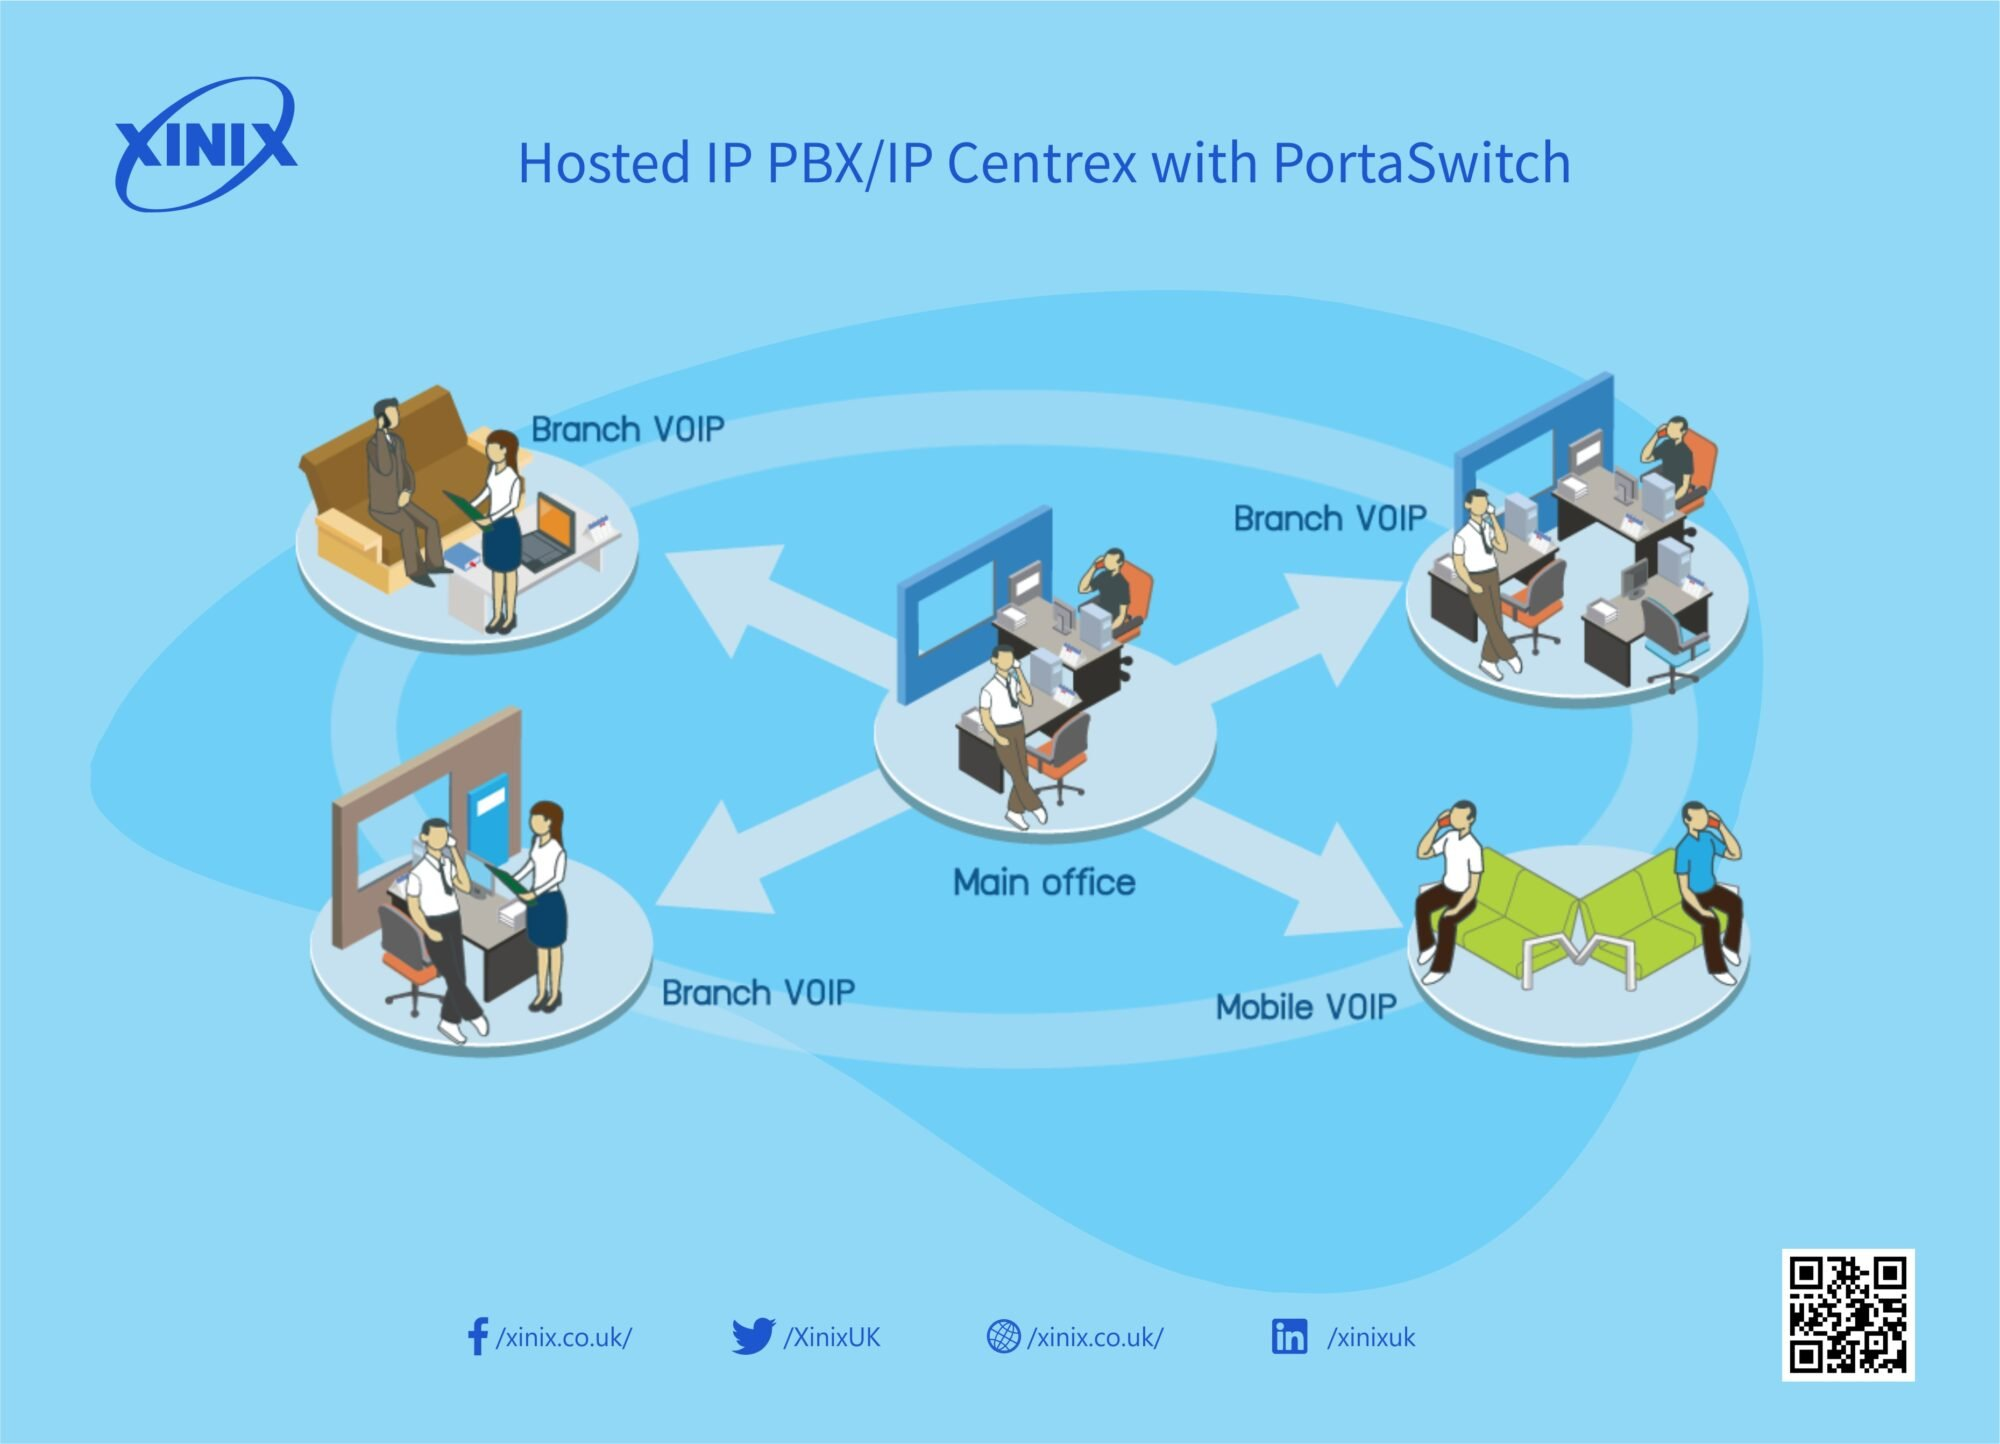 Hosted IP PBX/IP Centrex with PortaSwitch